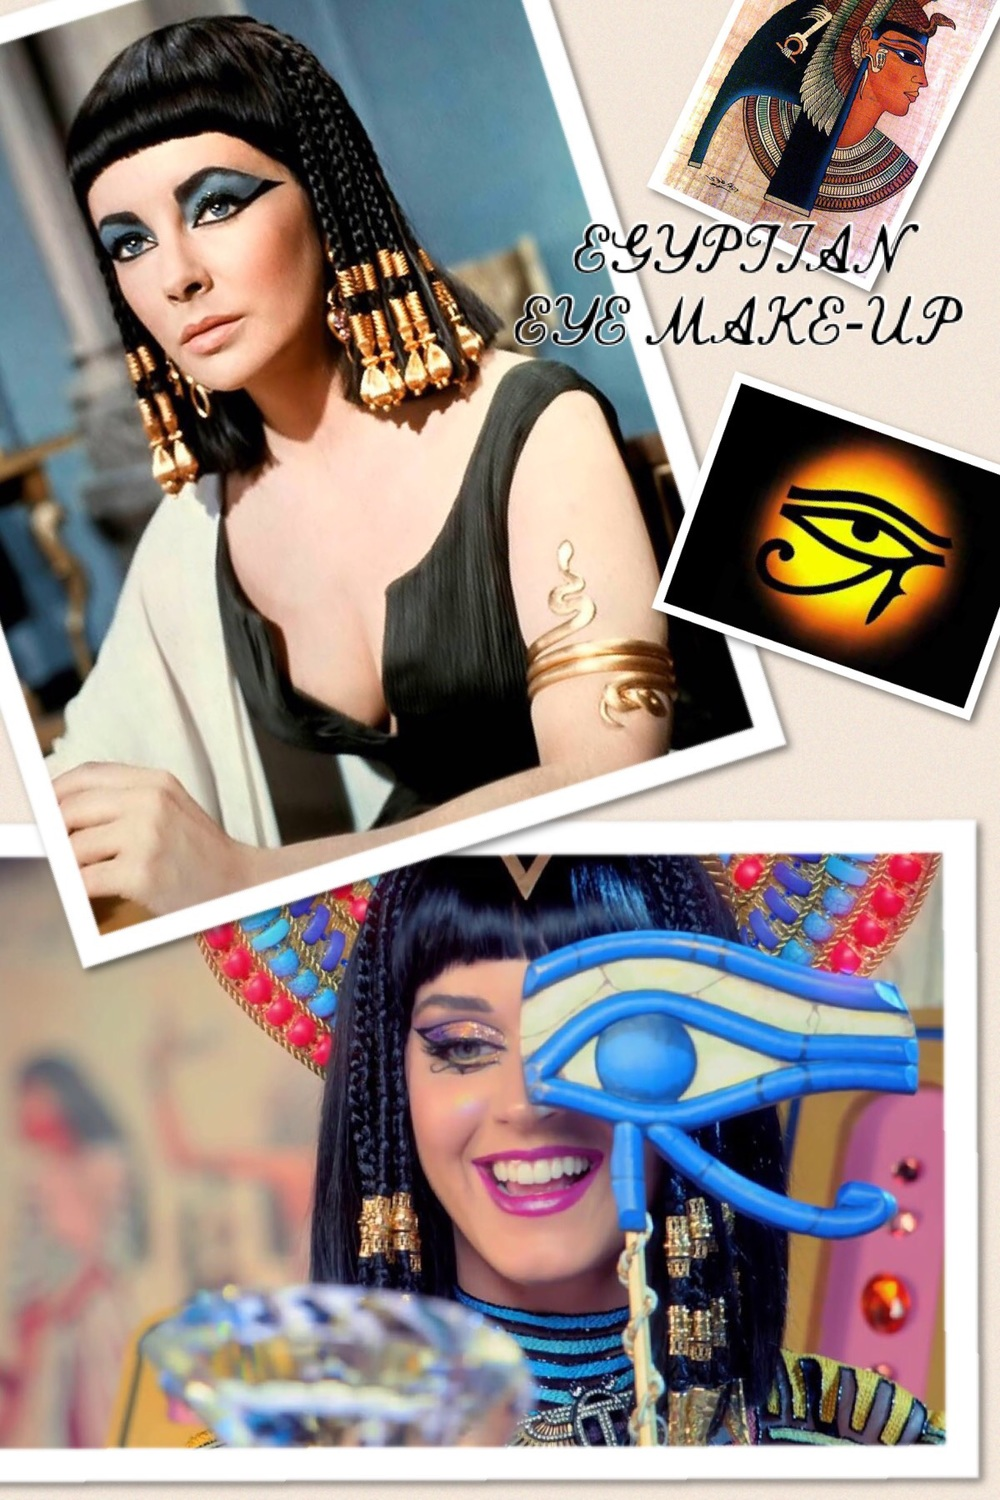 Egyptian eye make-up was the inspiration behind my make-up look...